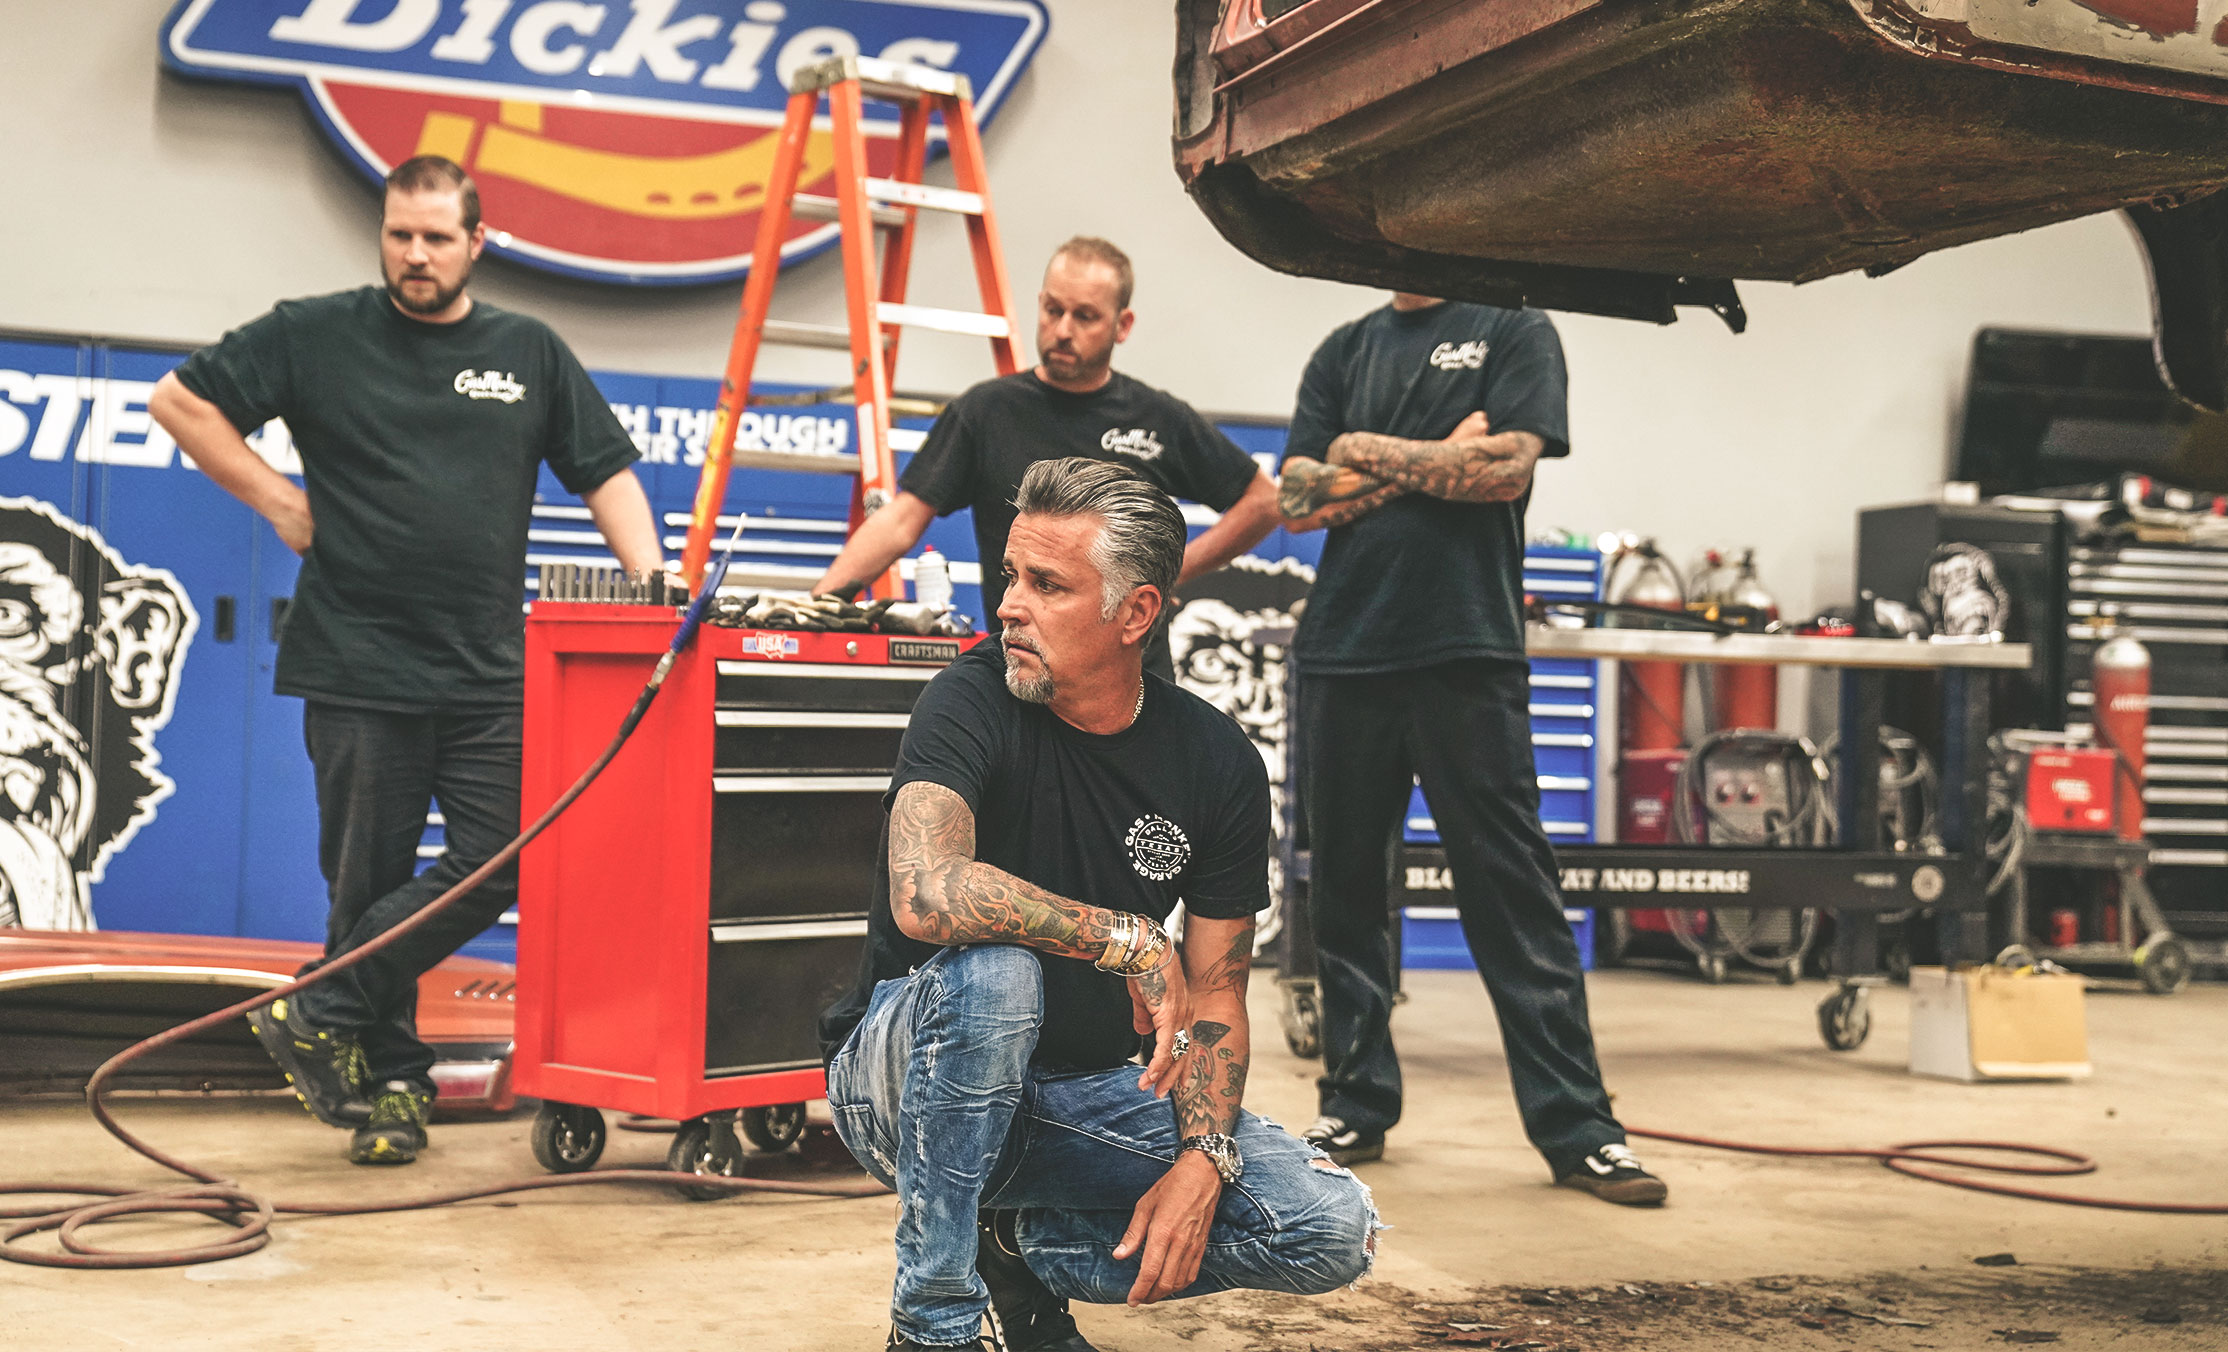 Those Who Impact - Gas Monkey Garage